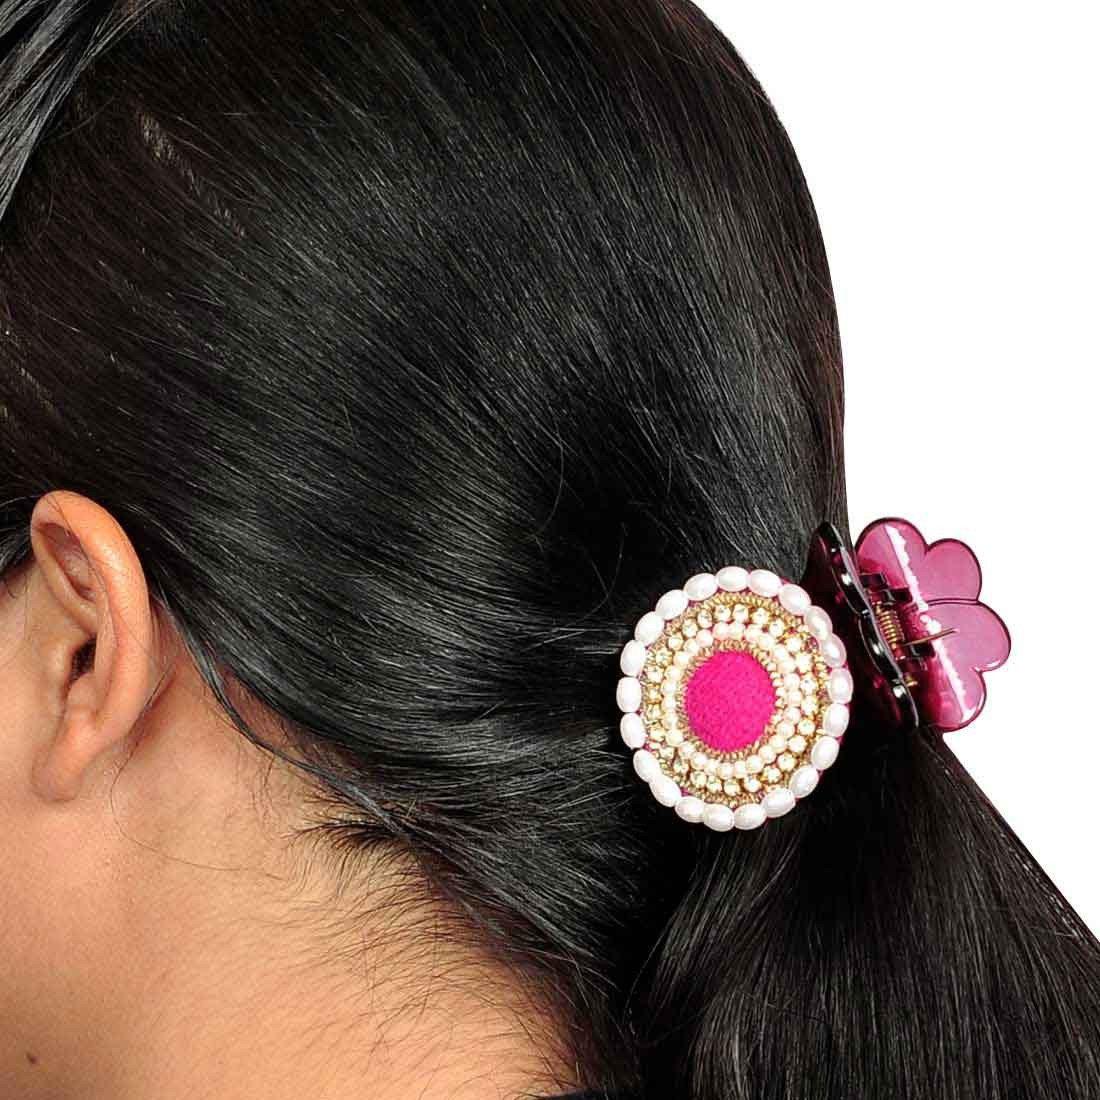 Lovely Designer Hair Clutcher in Pink White for College by Maayra